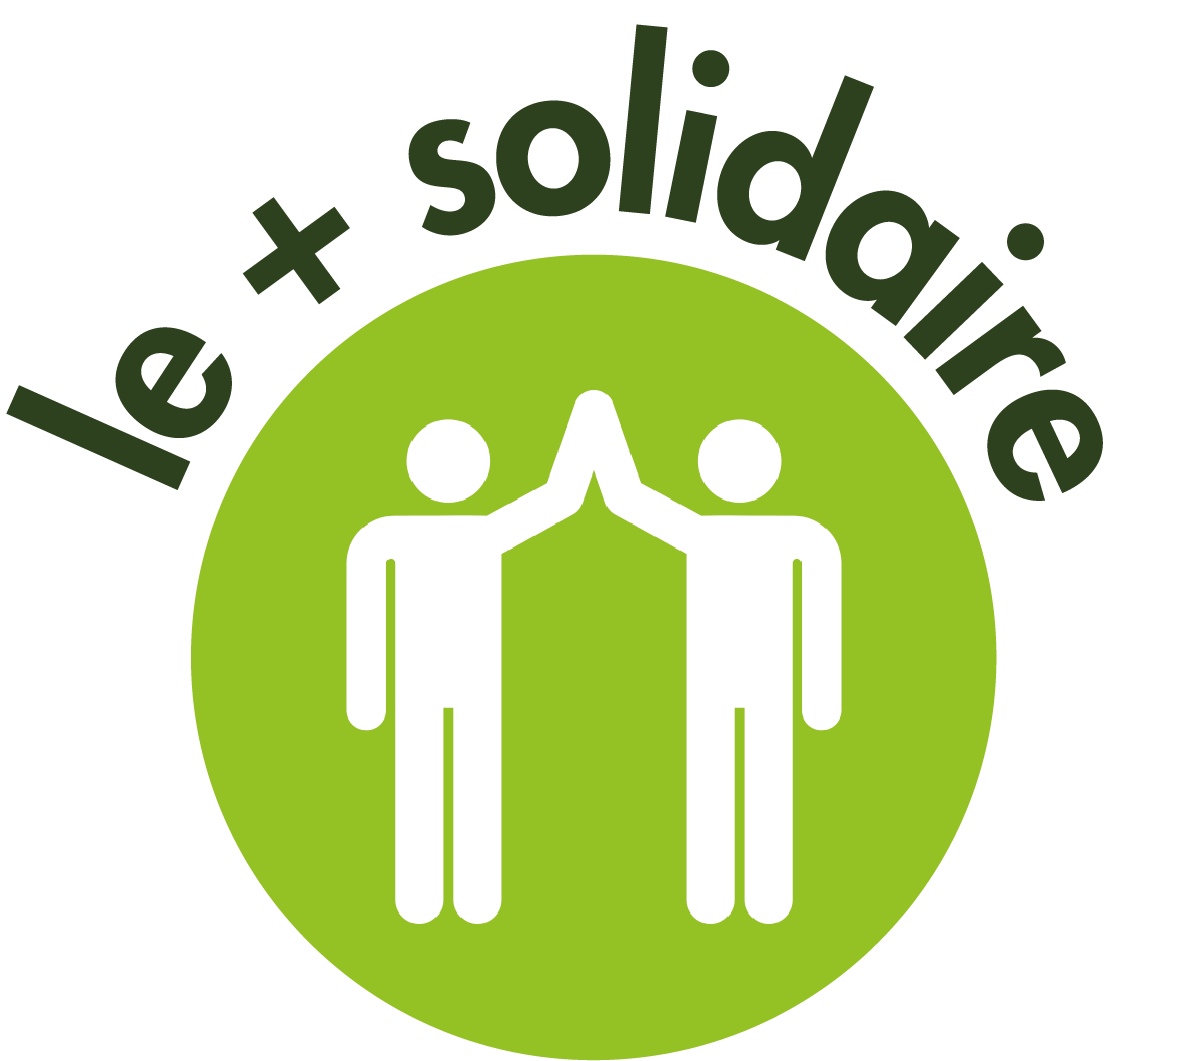 GL icone - le + solidaire